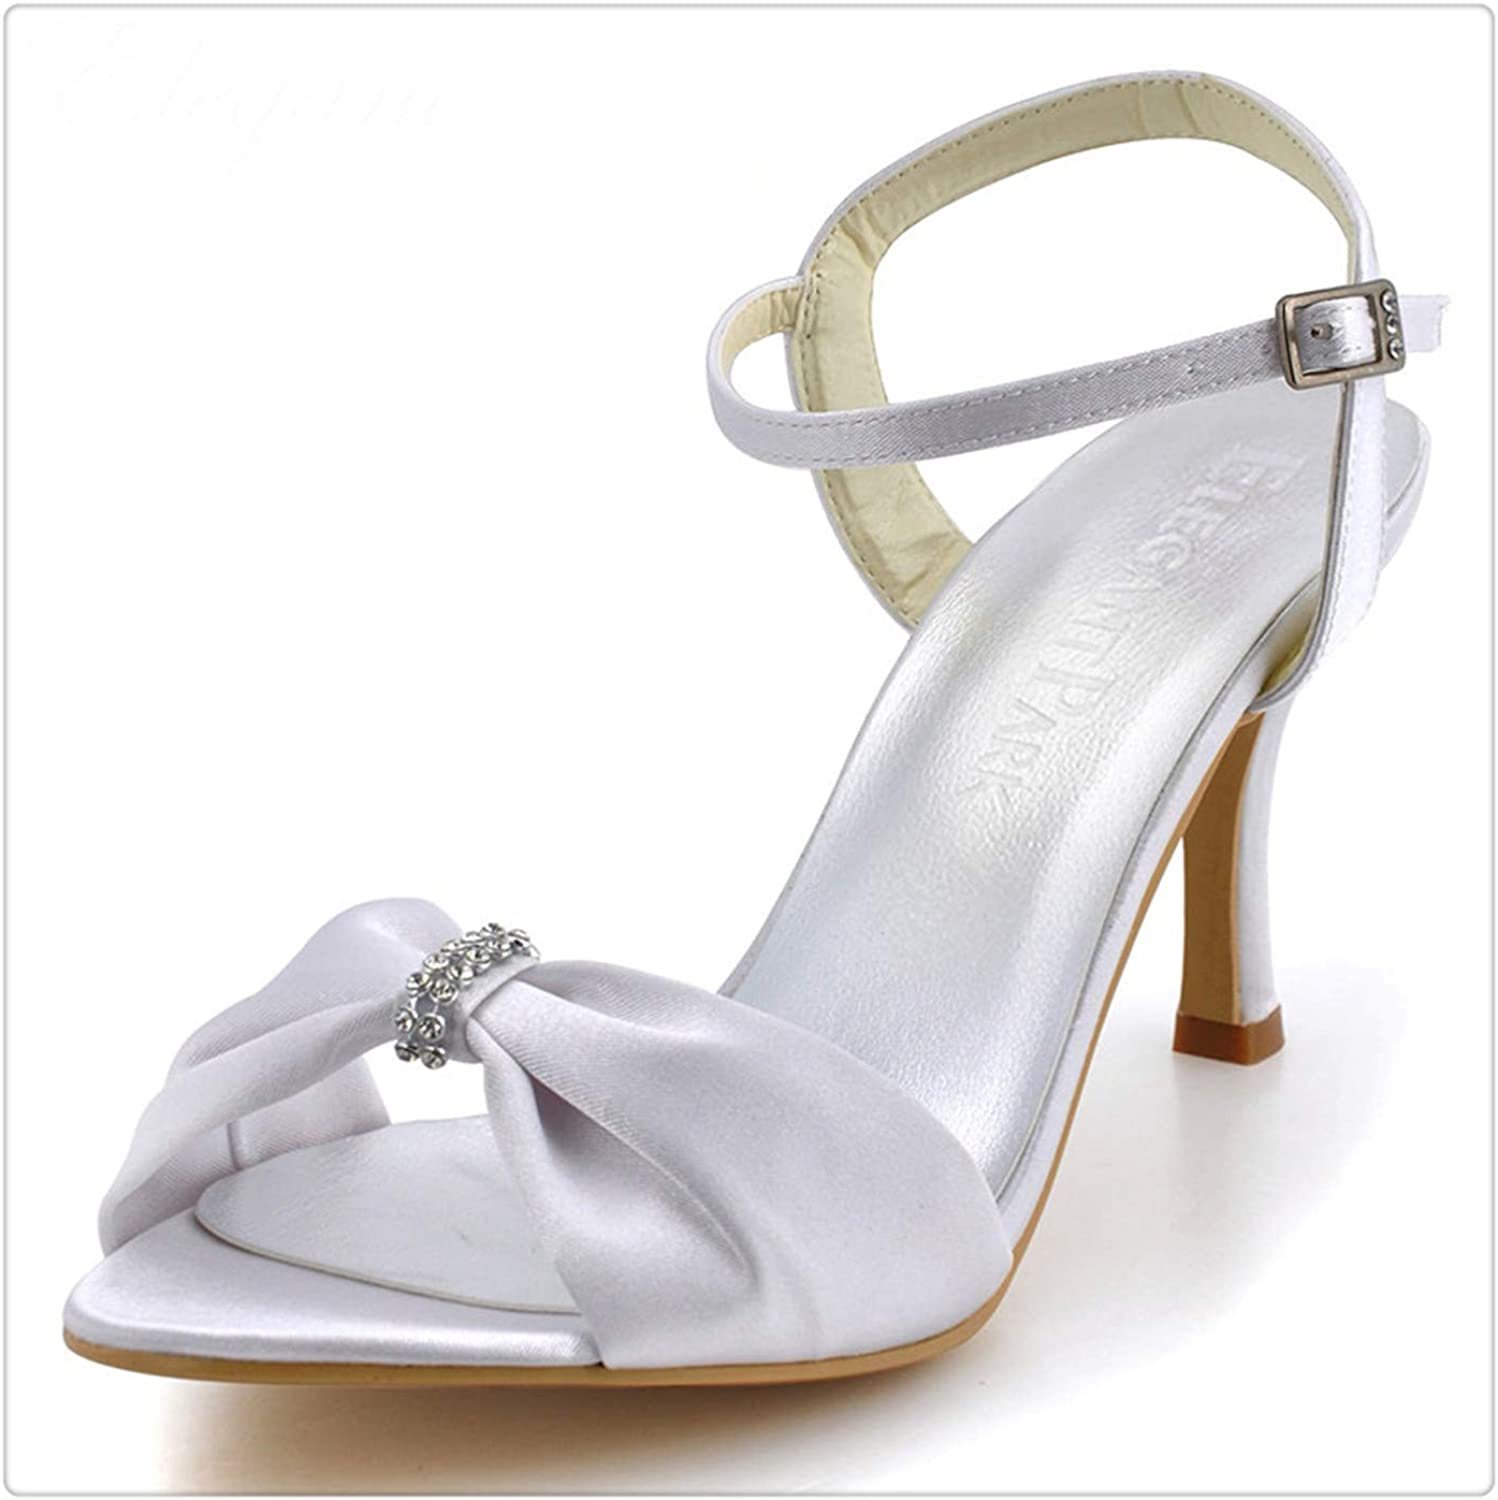 BIONGTY& Woman High Heel shoes Open Toe Rhinestone Ankle Strap Satin Wedding Sandals